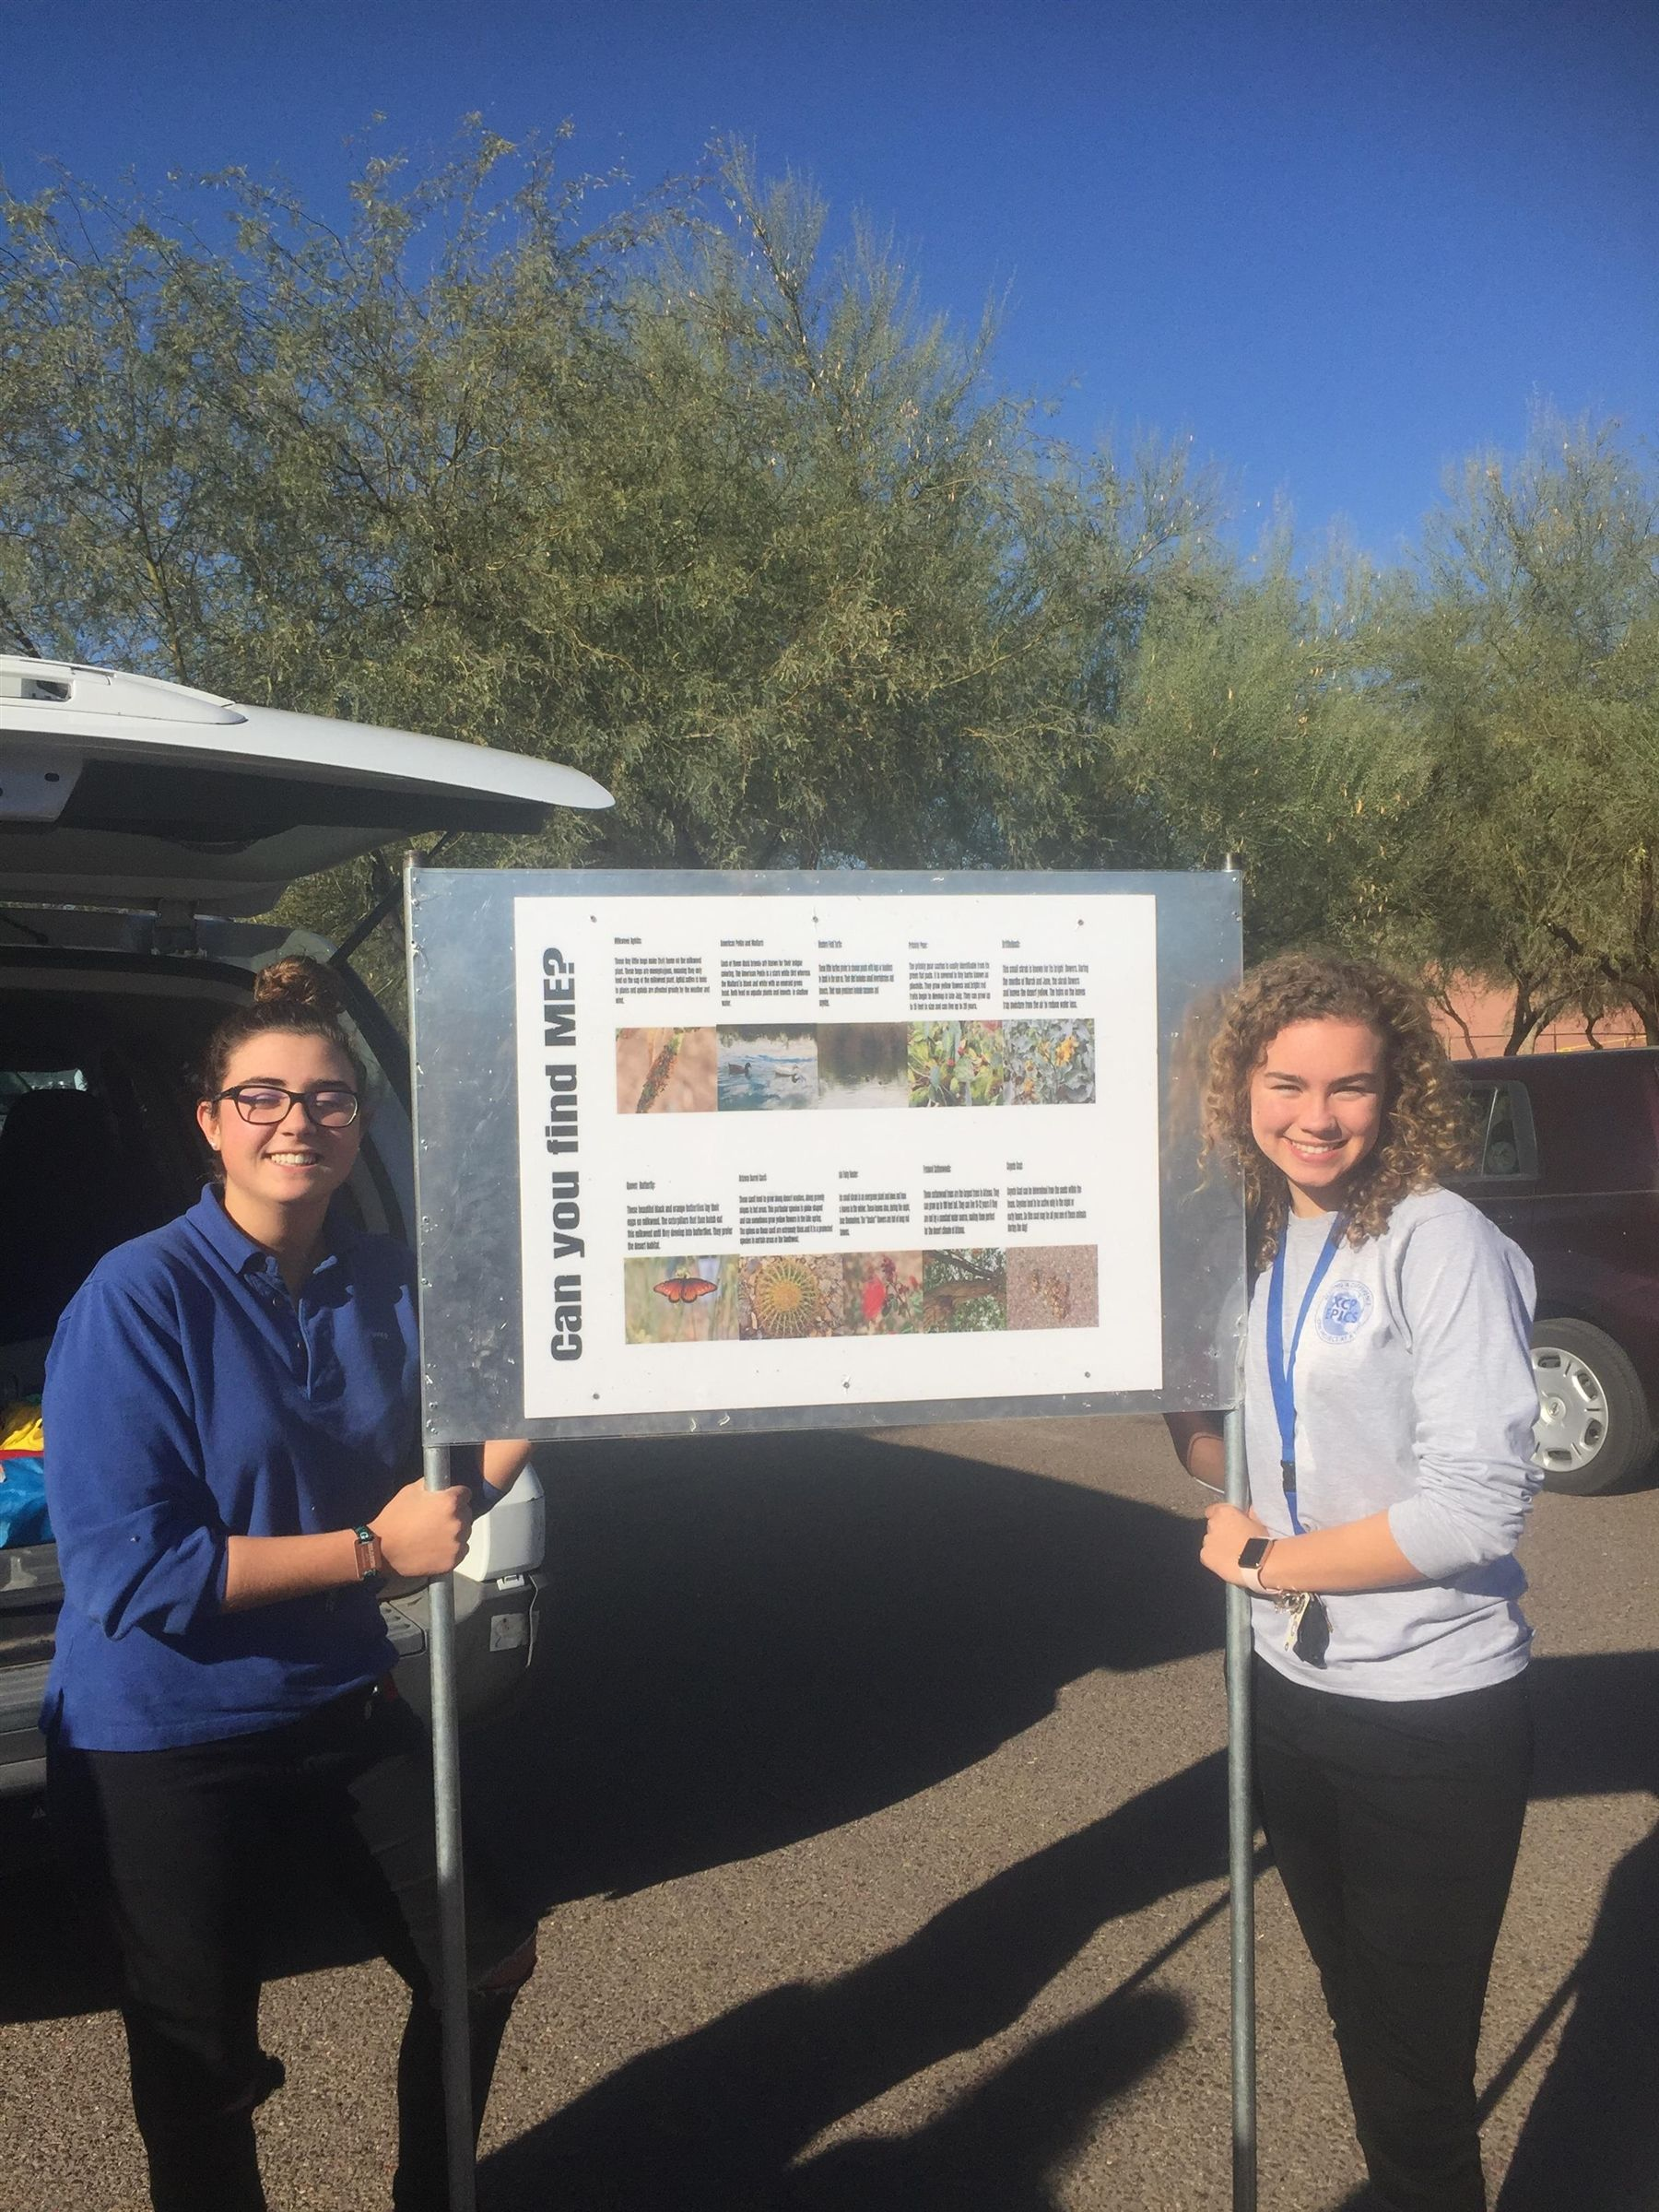 AP Environmental Science - as part of the EPICS program students participate in community service projects for the Rio Salado Restoration Area in south Phoenix. Here students made a field guide sign for the community to identify the plants and animals in the area.